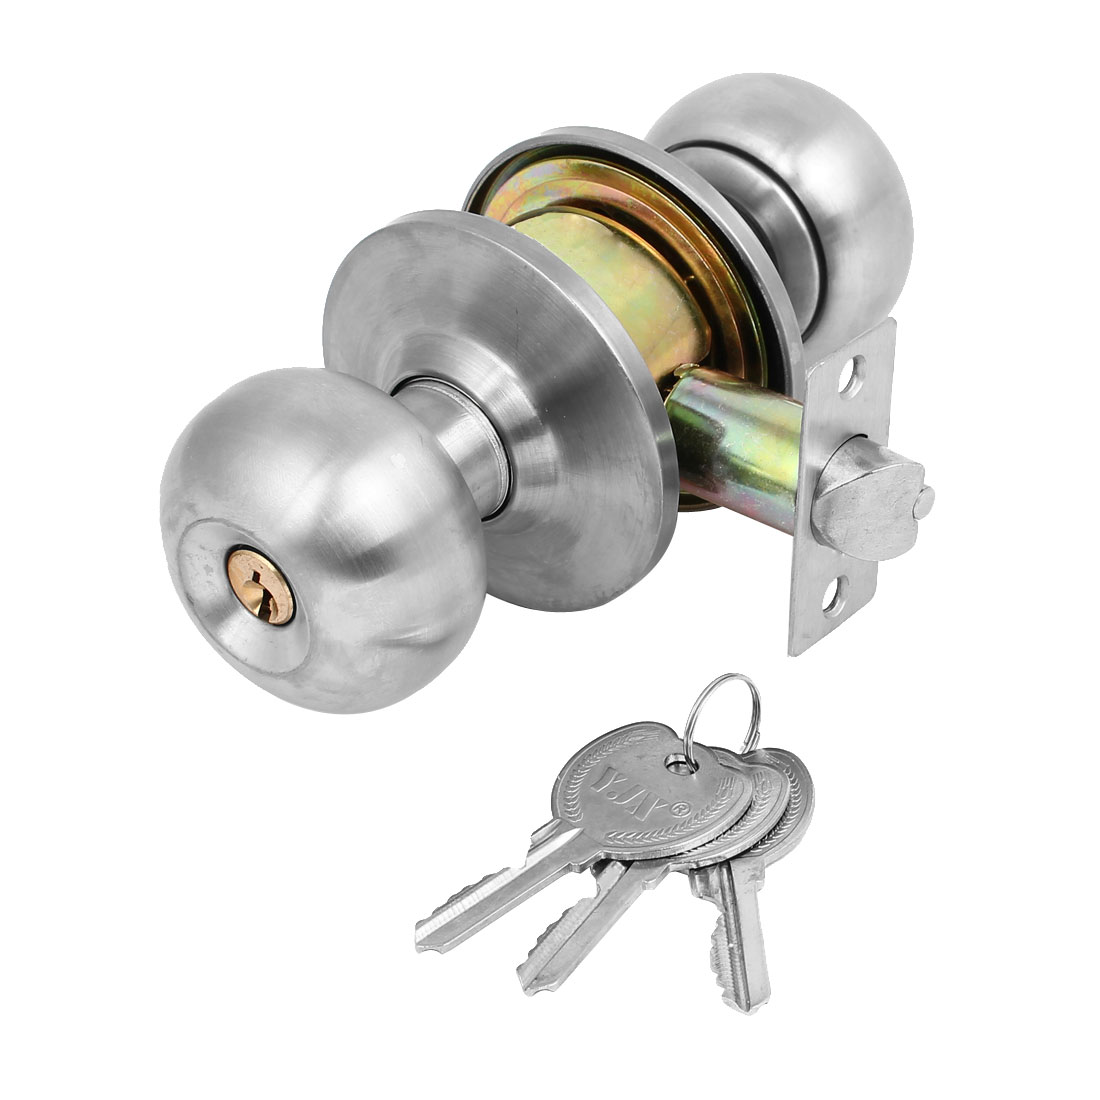 Ball Entry Door Locks with keys Knob Three Knobset Bedroom Bath Stainless Brushed